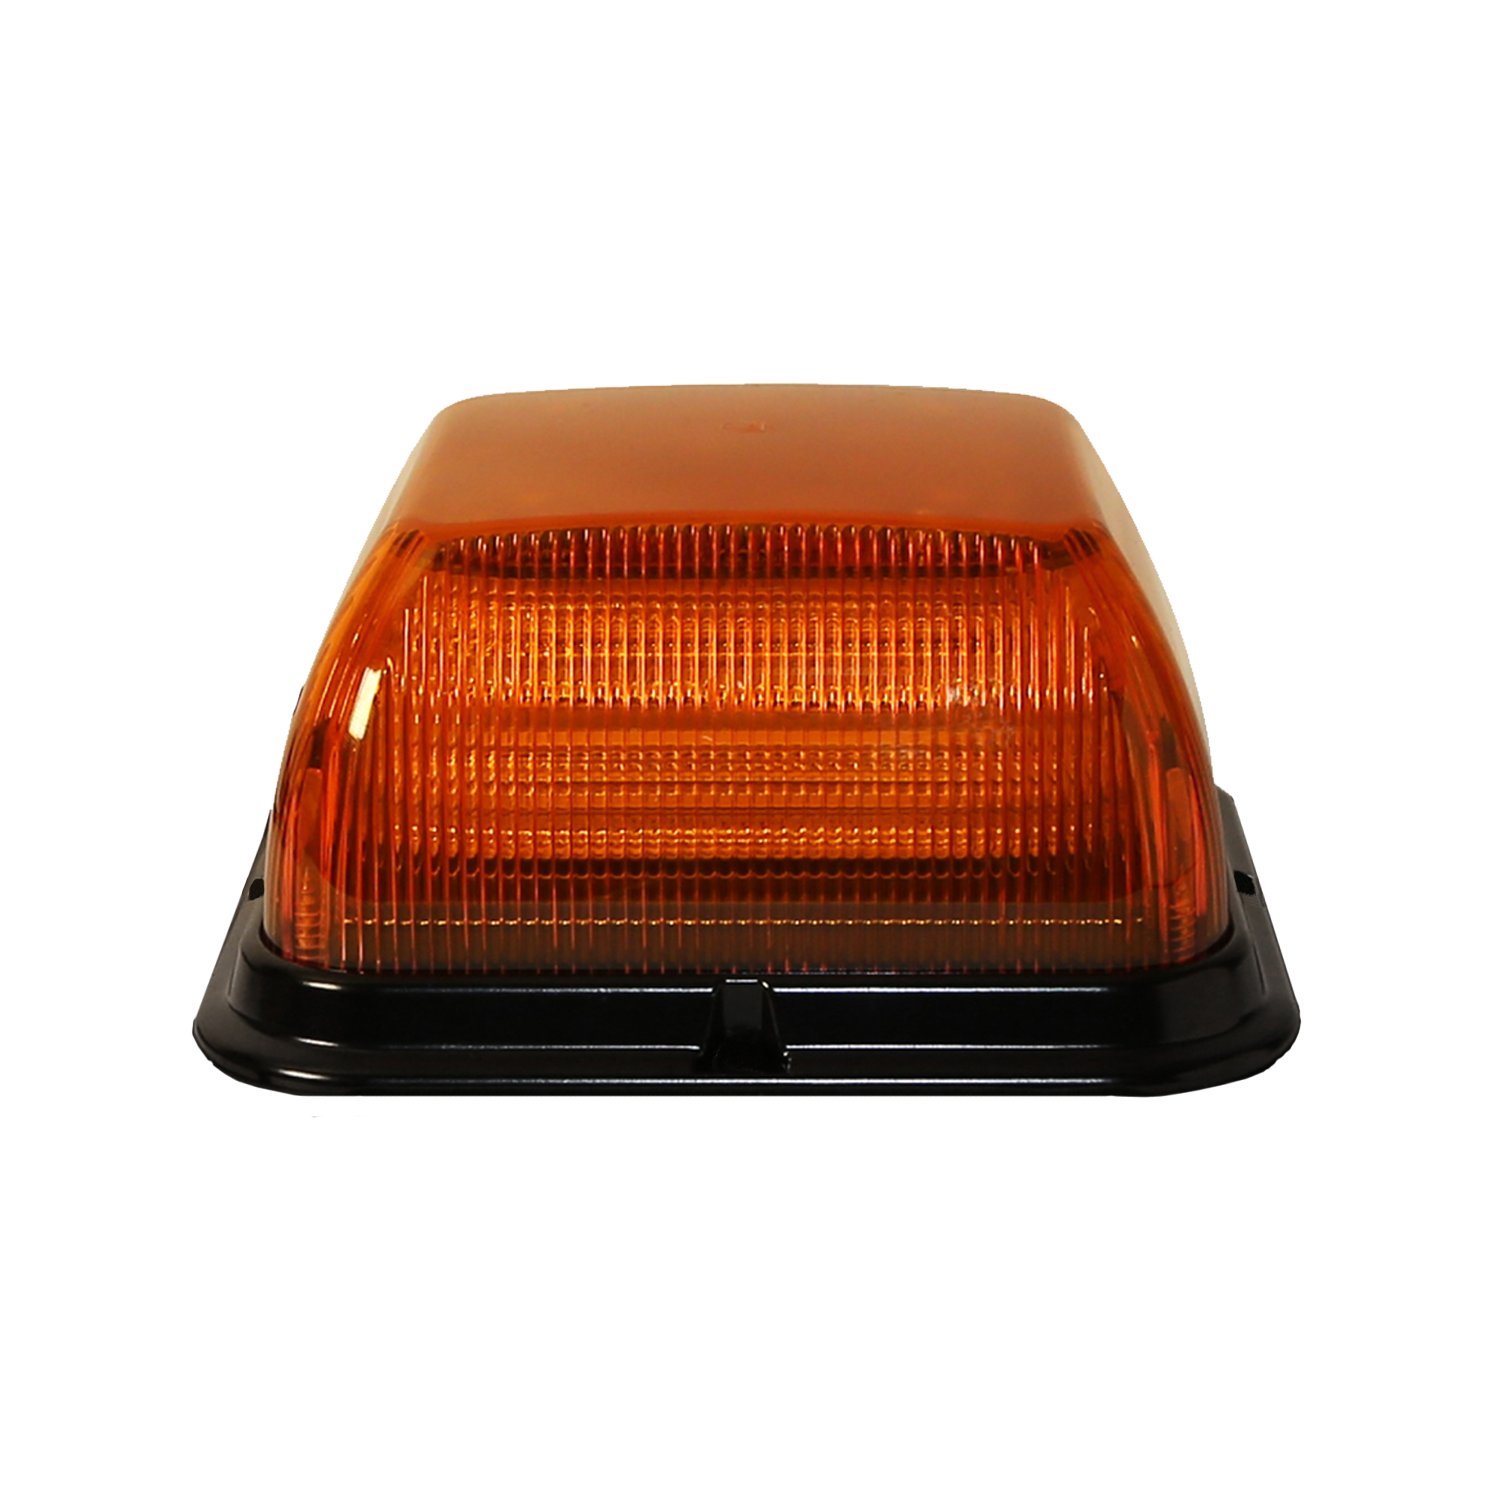 ECCO Lighting - LED Beacon: Dual-color | Square | reinforced polypropylene base | medium profile | 12-24VDC | 24 flash patterns | clear lens | amber/green illumination